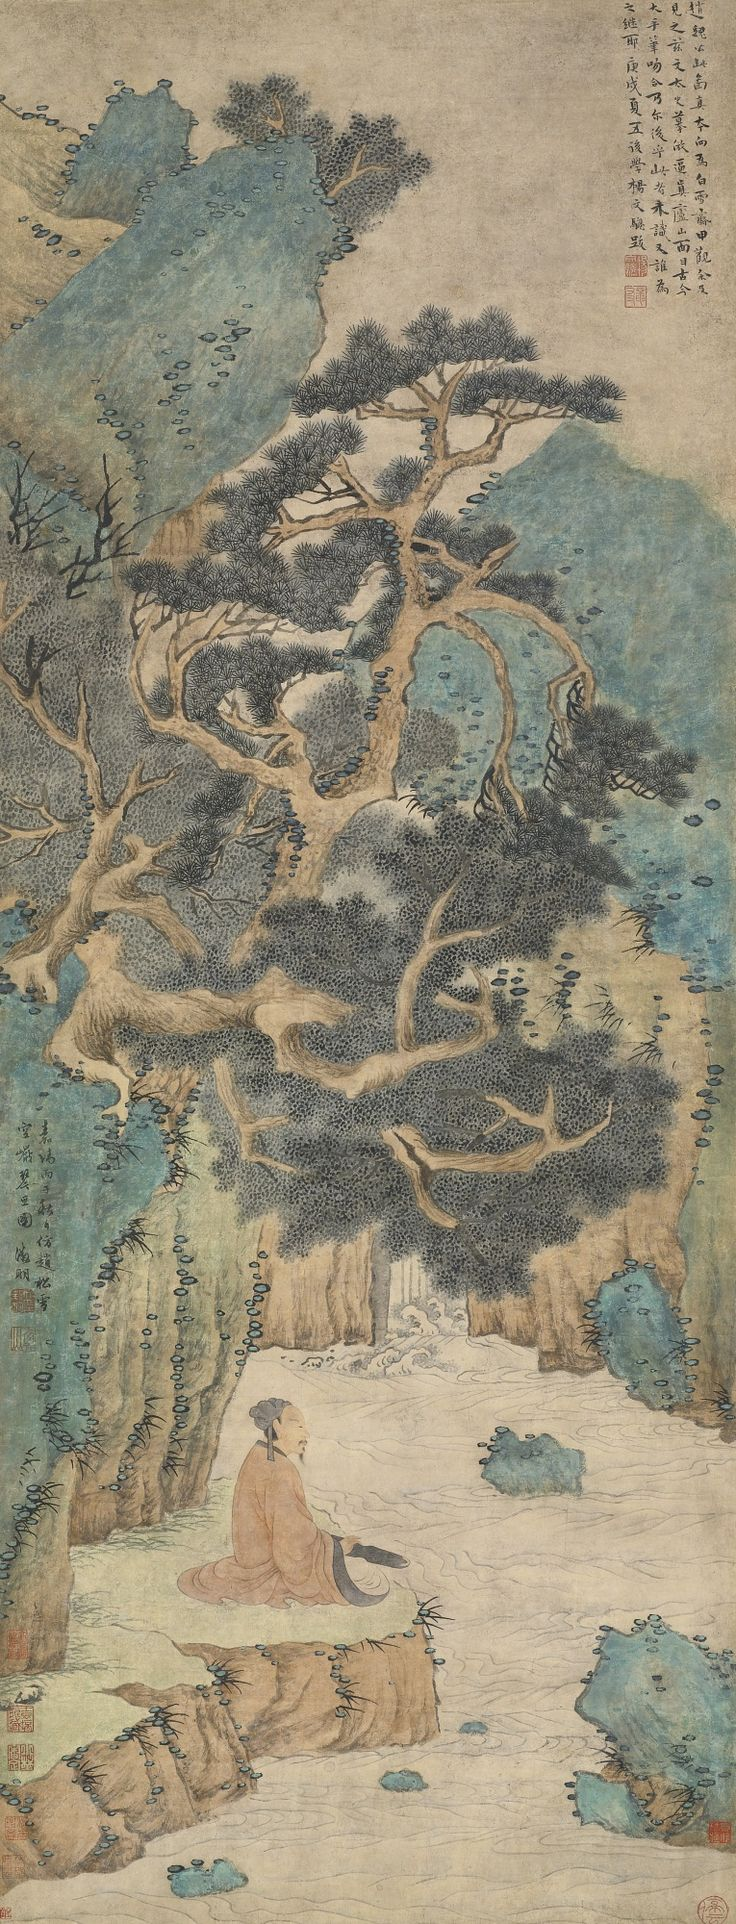 Attributed to Wen Zhengming 1470-1523 FEELING OF MUSIC IN AN EMPTY MOUTAIN